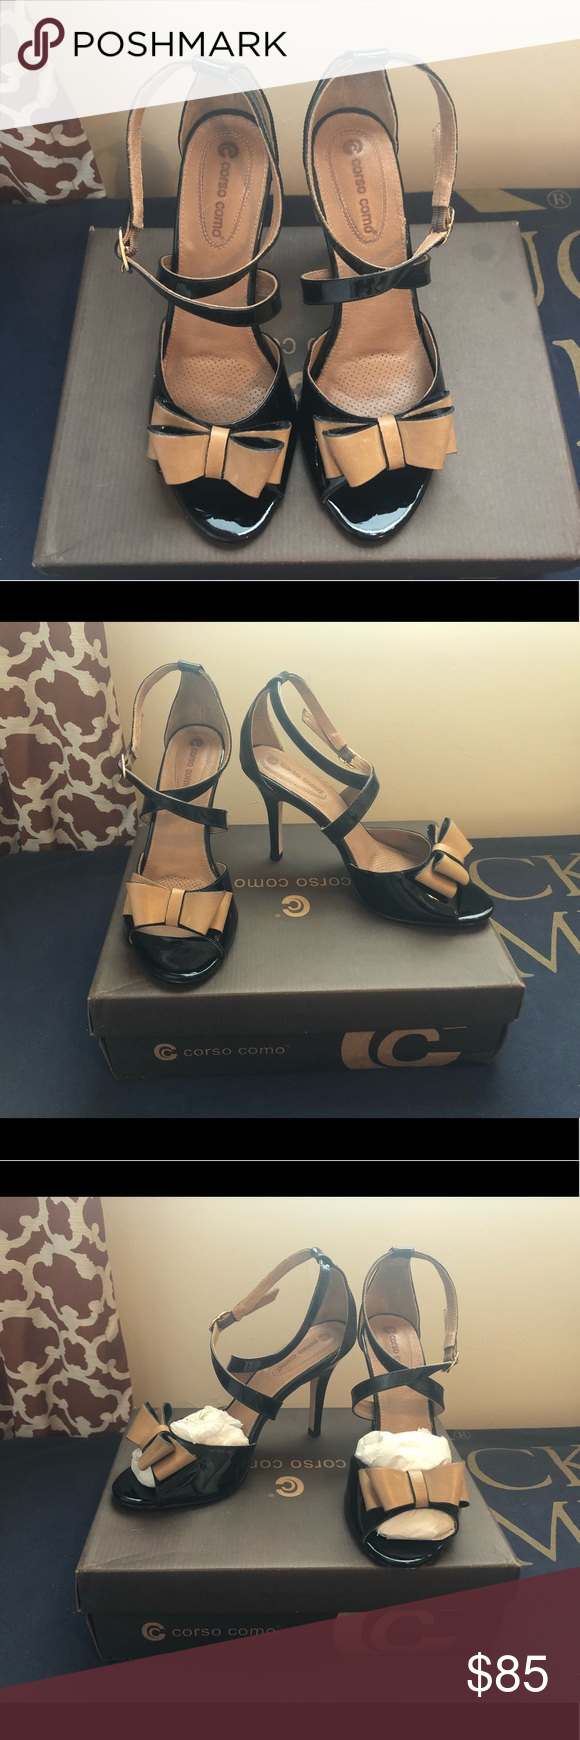 3bd9d06b348146 Corso Como Nordstrom Black   Tan Heels Sz 8 Only worn for one occasion